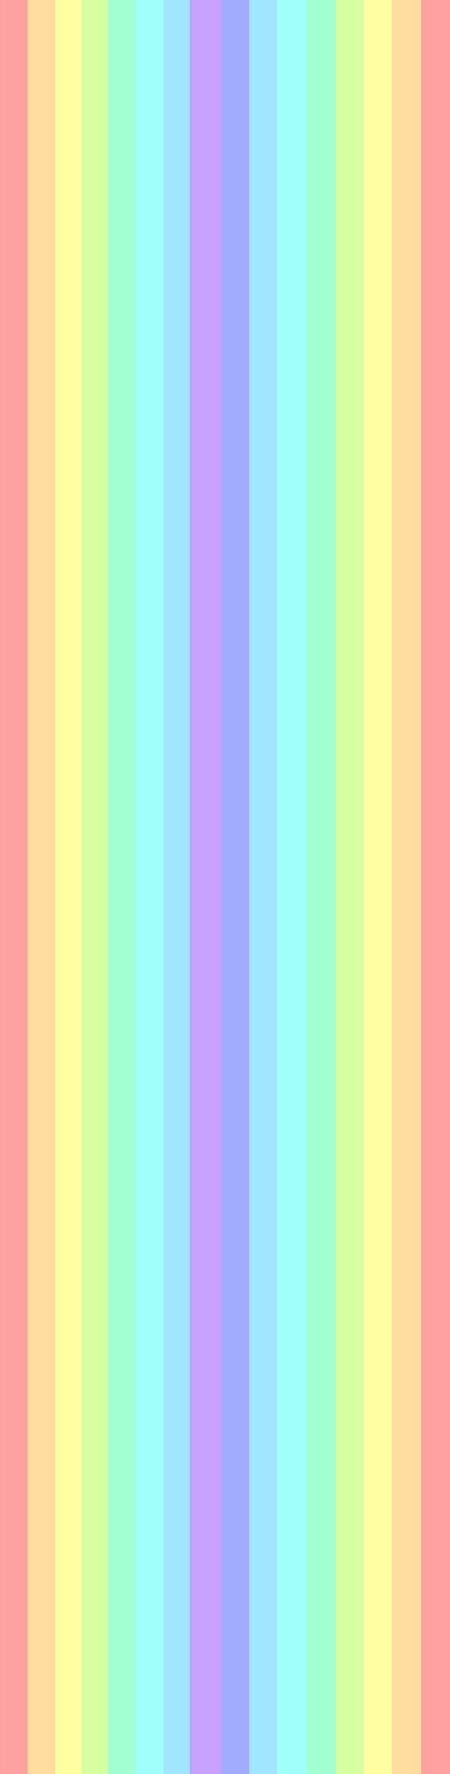 Rainbow background by Yamio